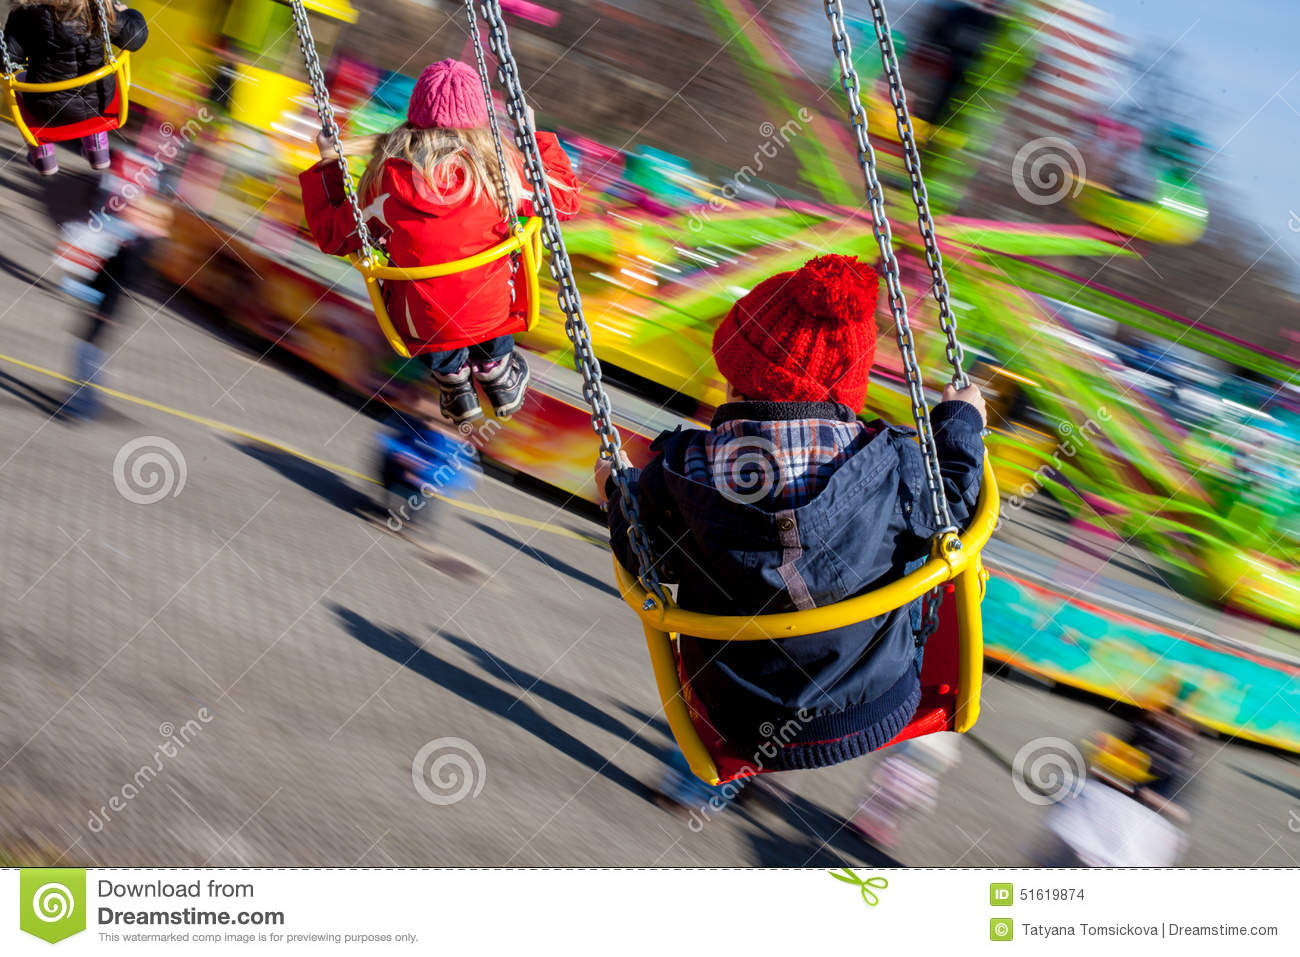 Kids, Having Fun On A Swing Chain Carousel Ride Stock Photo.